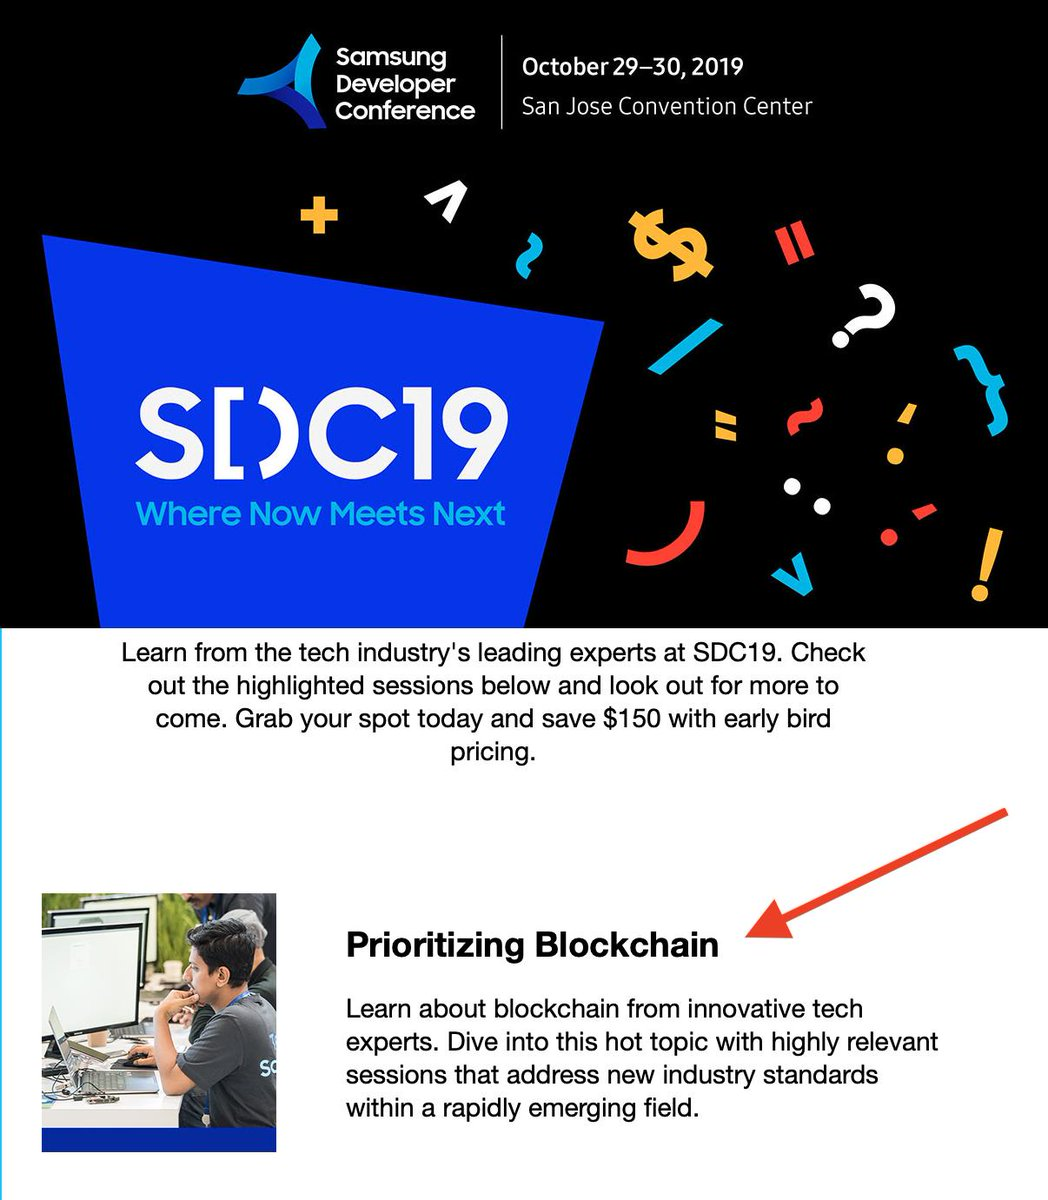 """Quite exciting move by @SamsungMobile to announce their #SDC19 @SamsungDevUS conference and put in highlights """"Prioritizing Blockchain""""   #MassAdoption #Blockchain #Gaming #Samsung<br>http://pic.twitter.com/cV8xi3xv6d"""